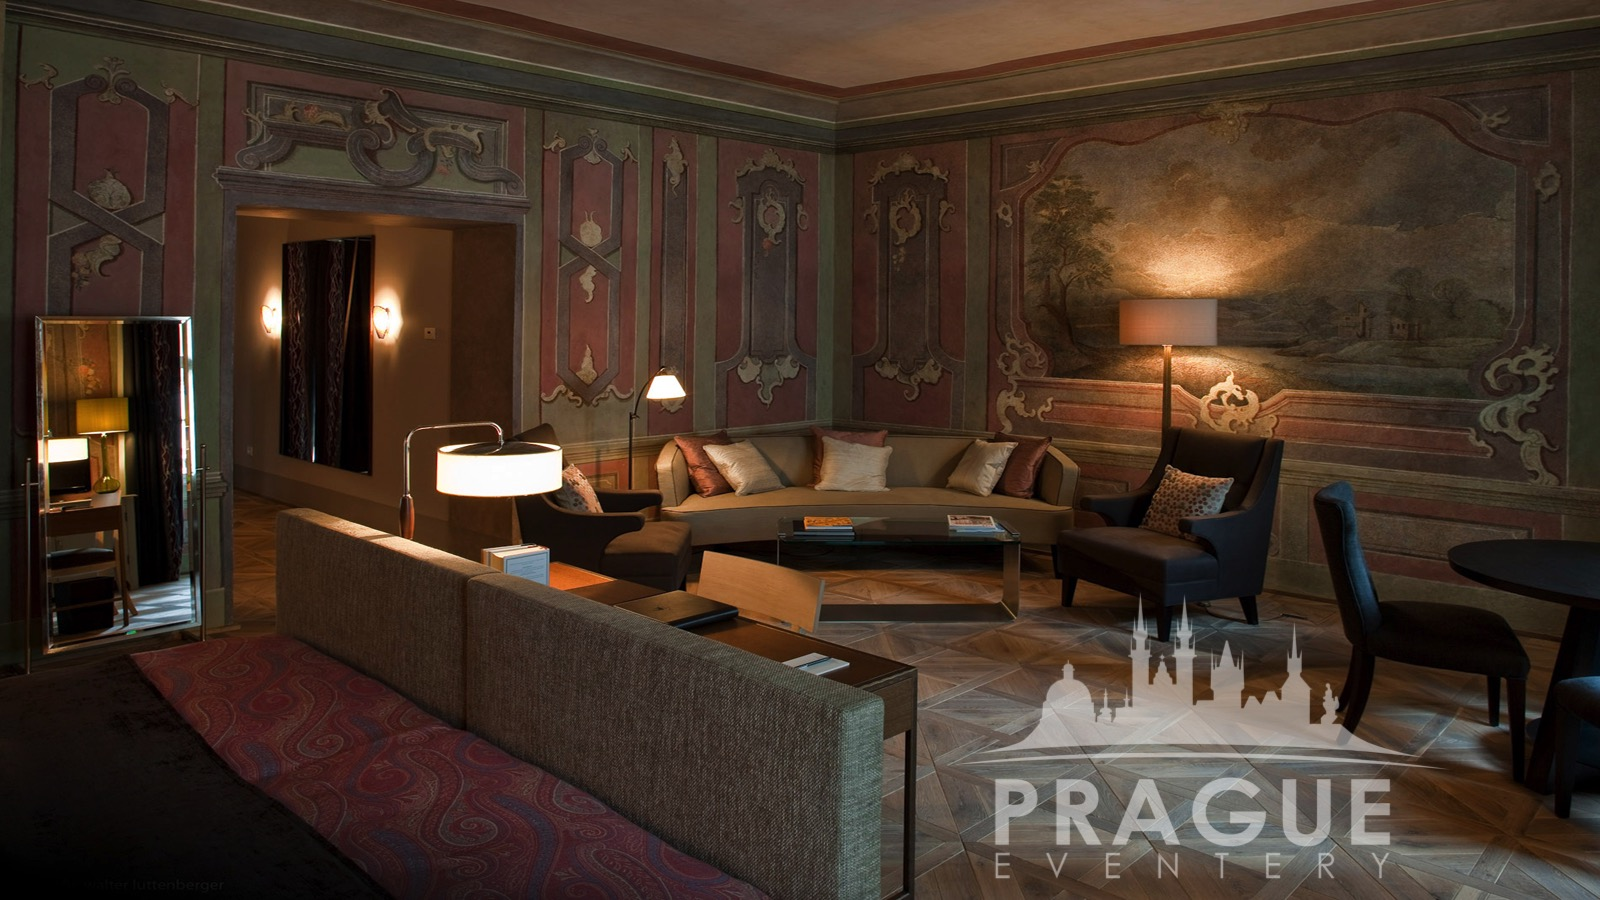 The augustine prague prague eventery luxury hotels in for Luxury hotels prague